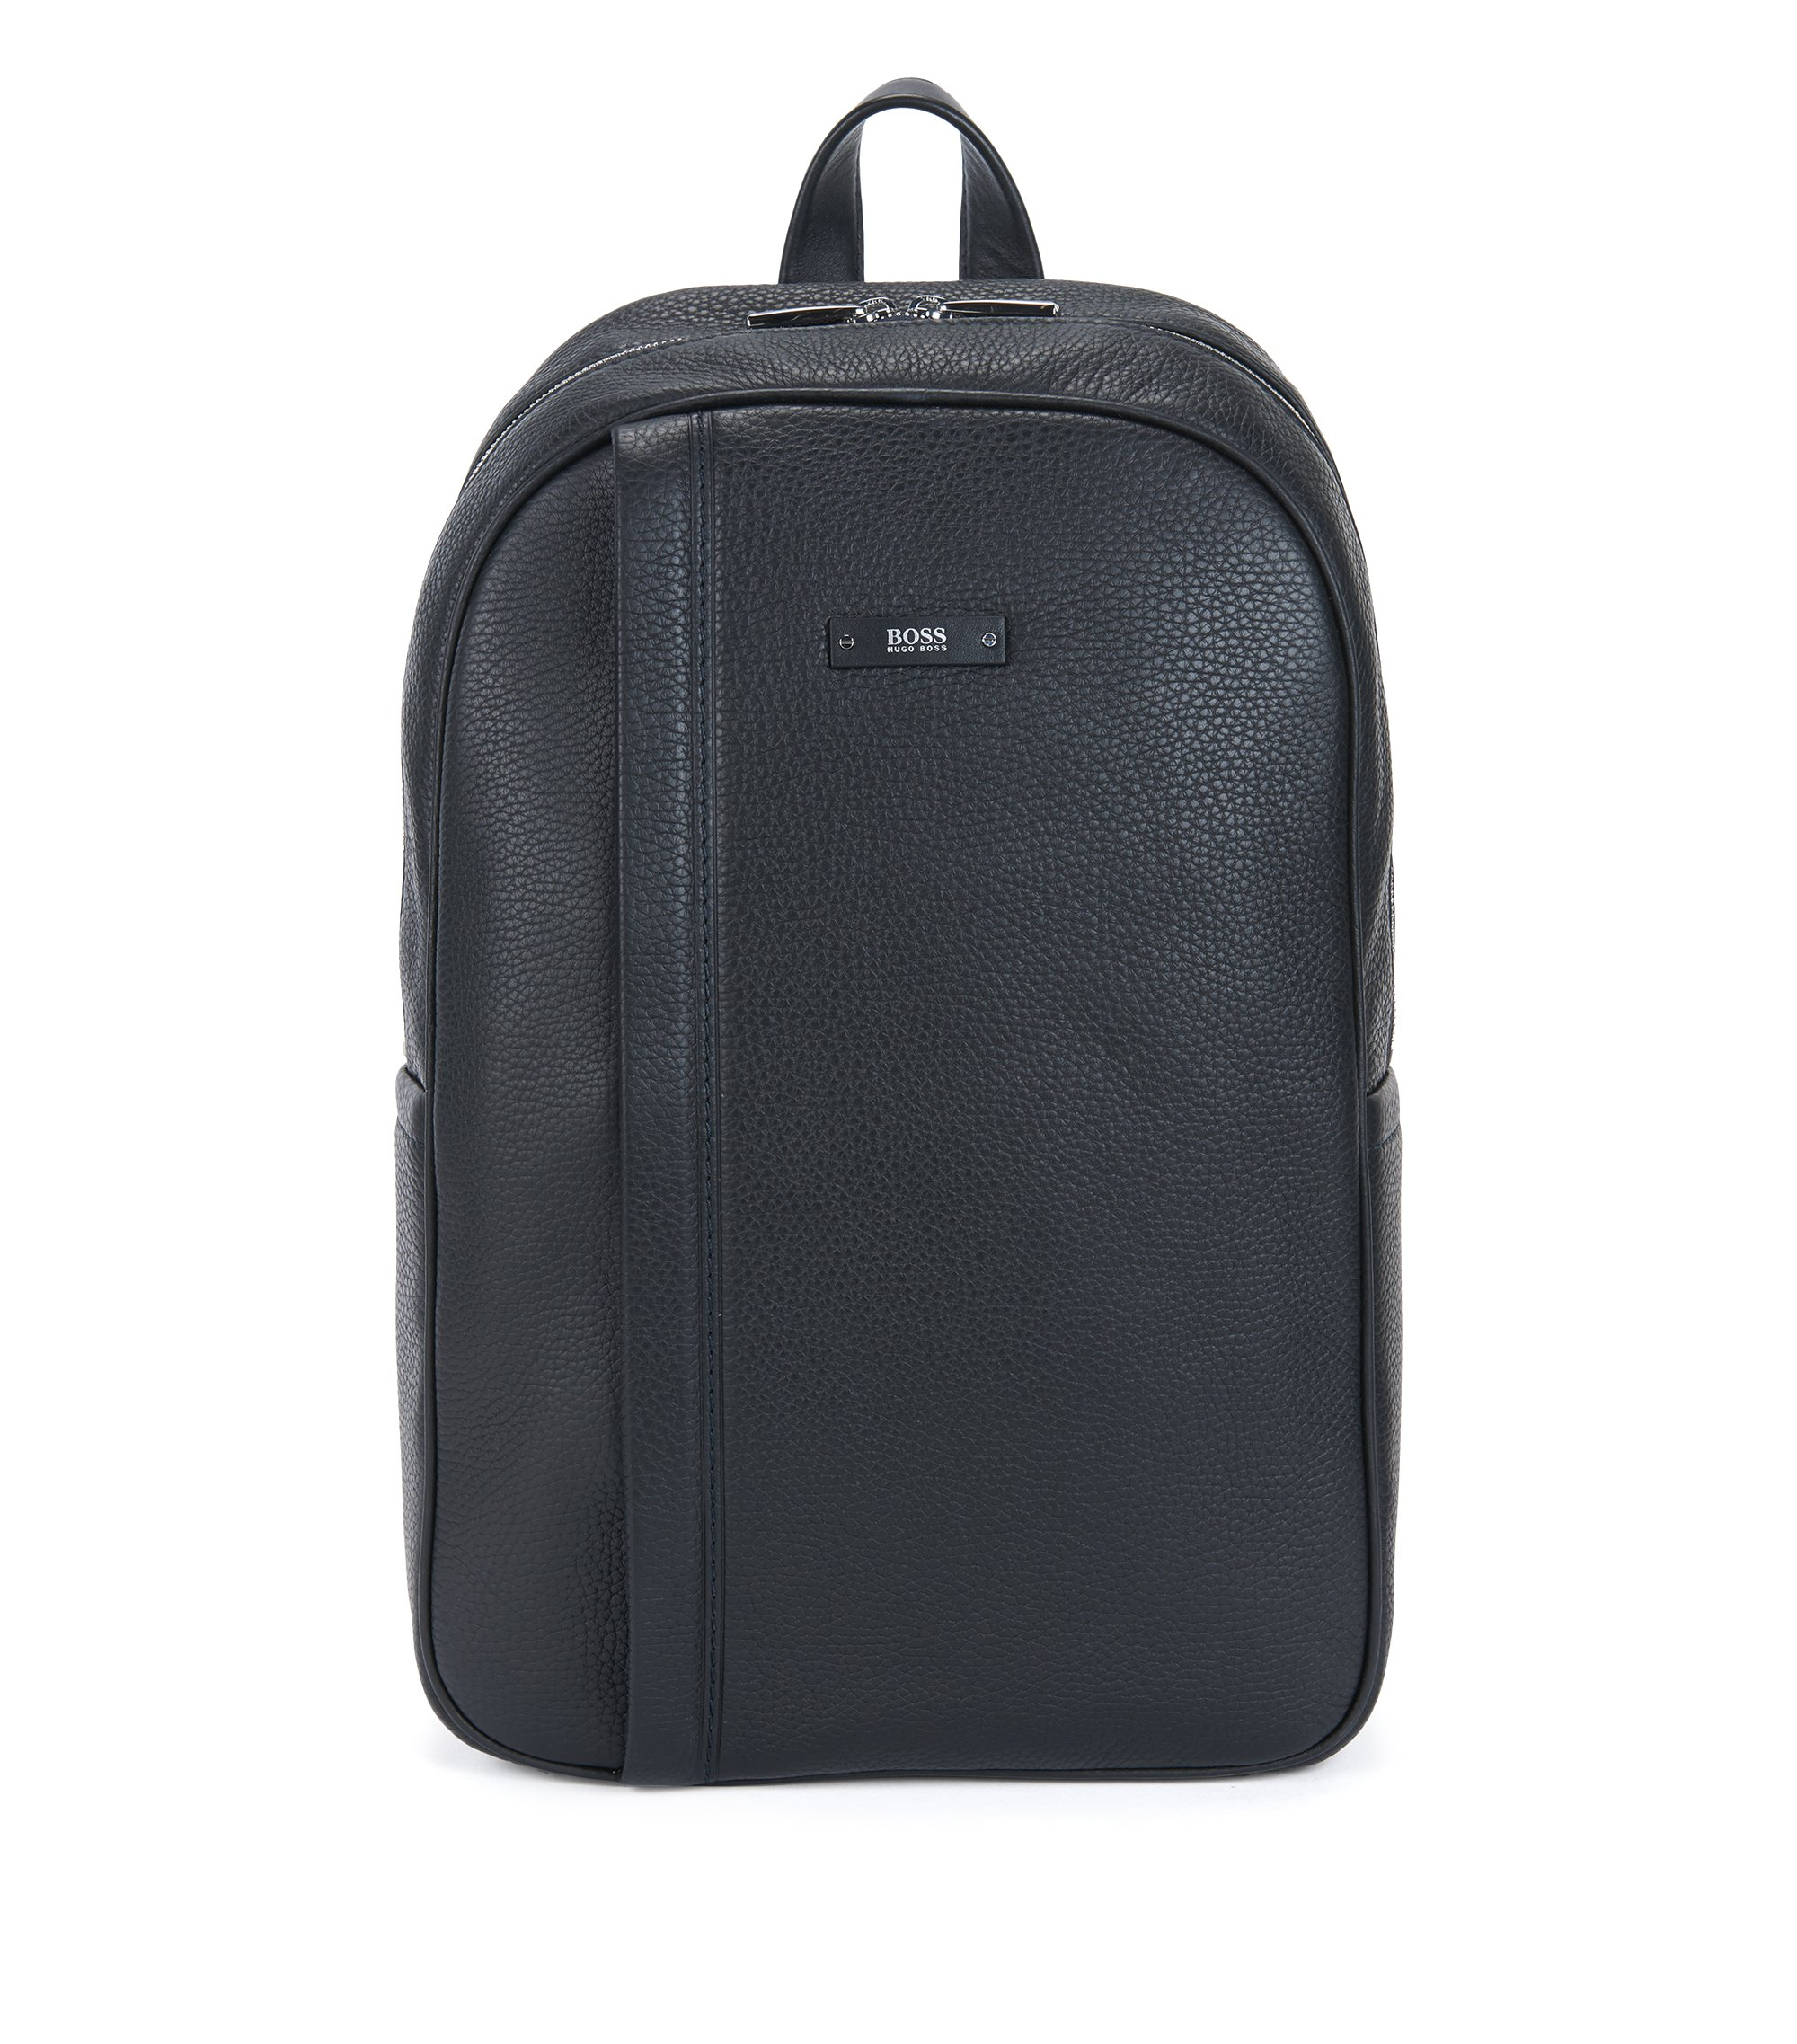 Leather Backpack | Traveller Backp N, Black